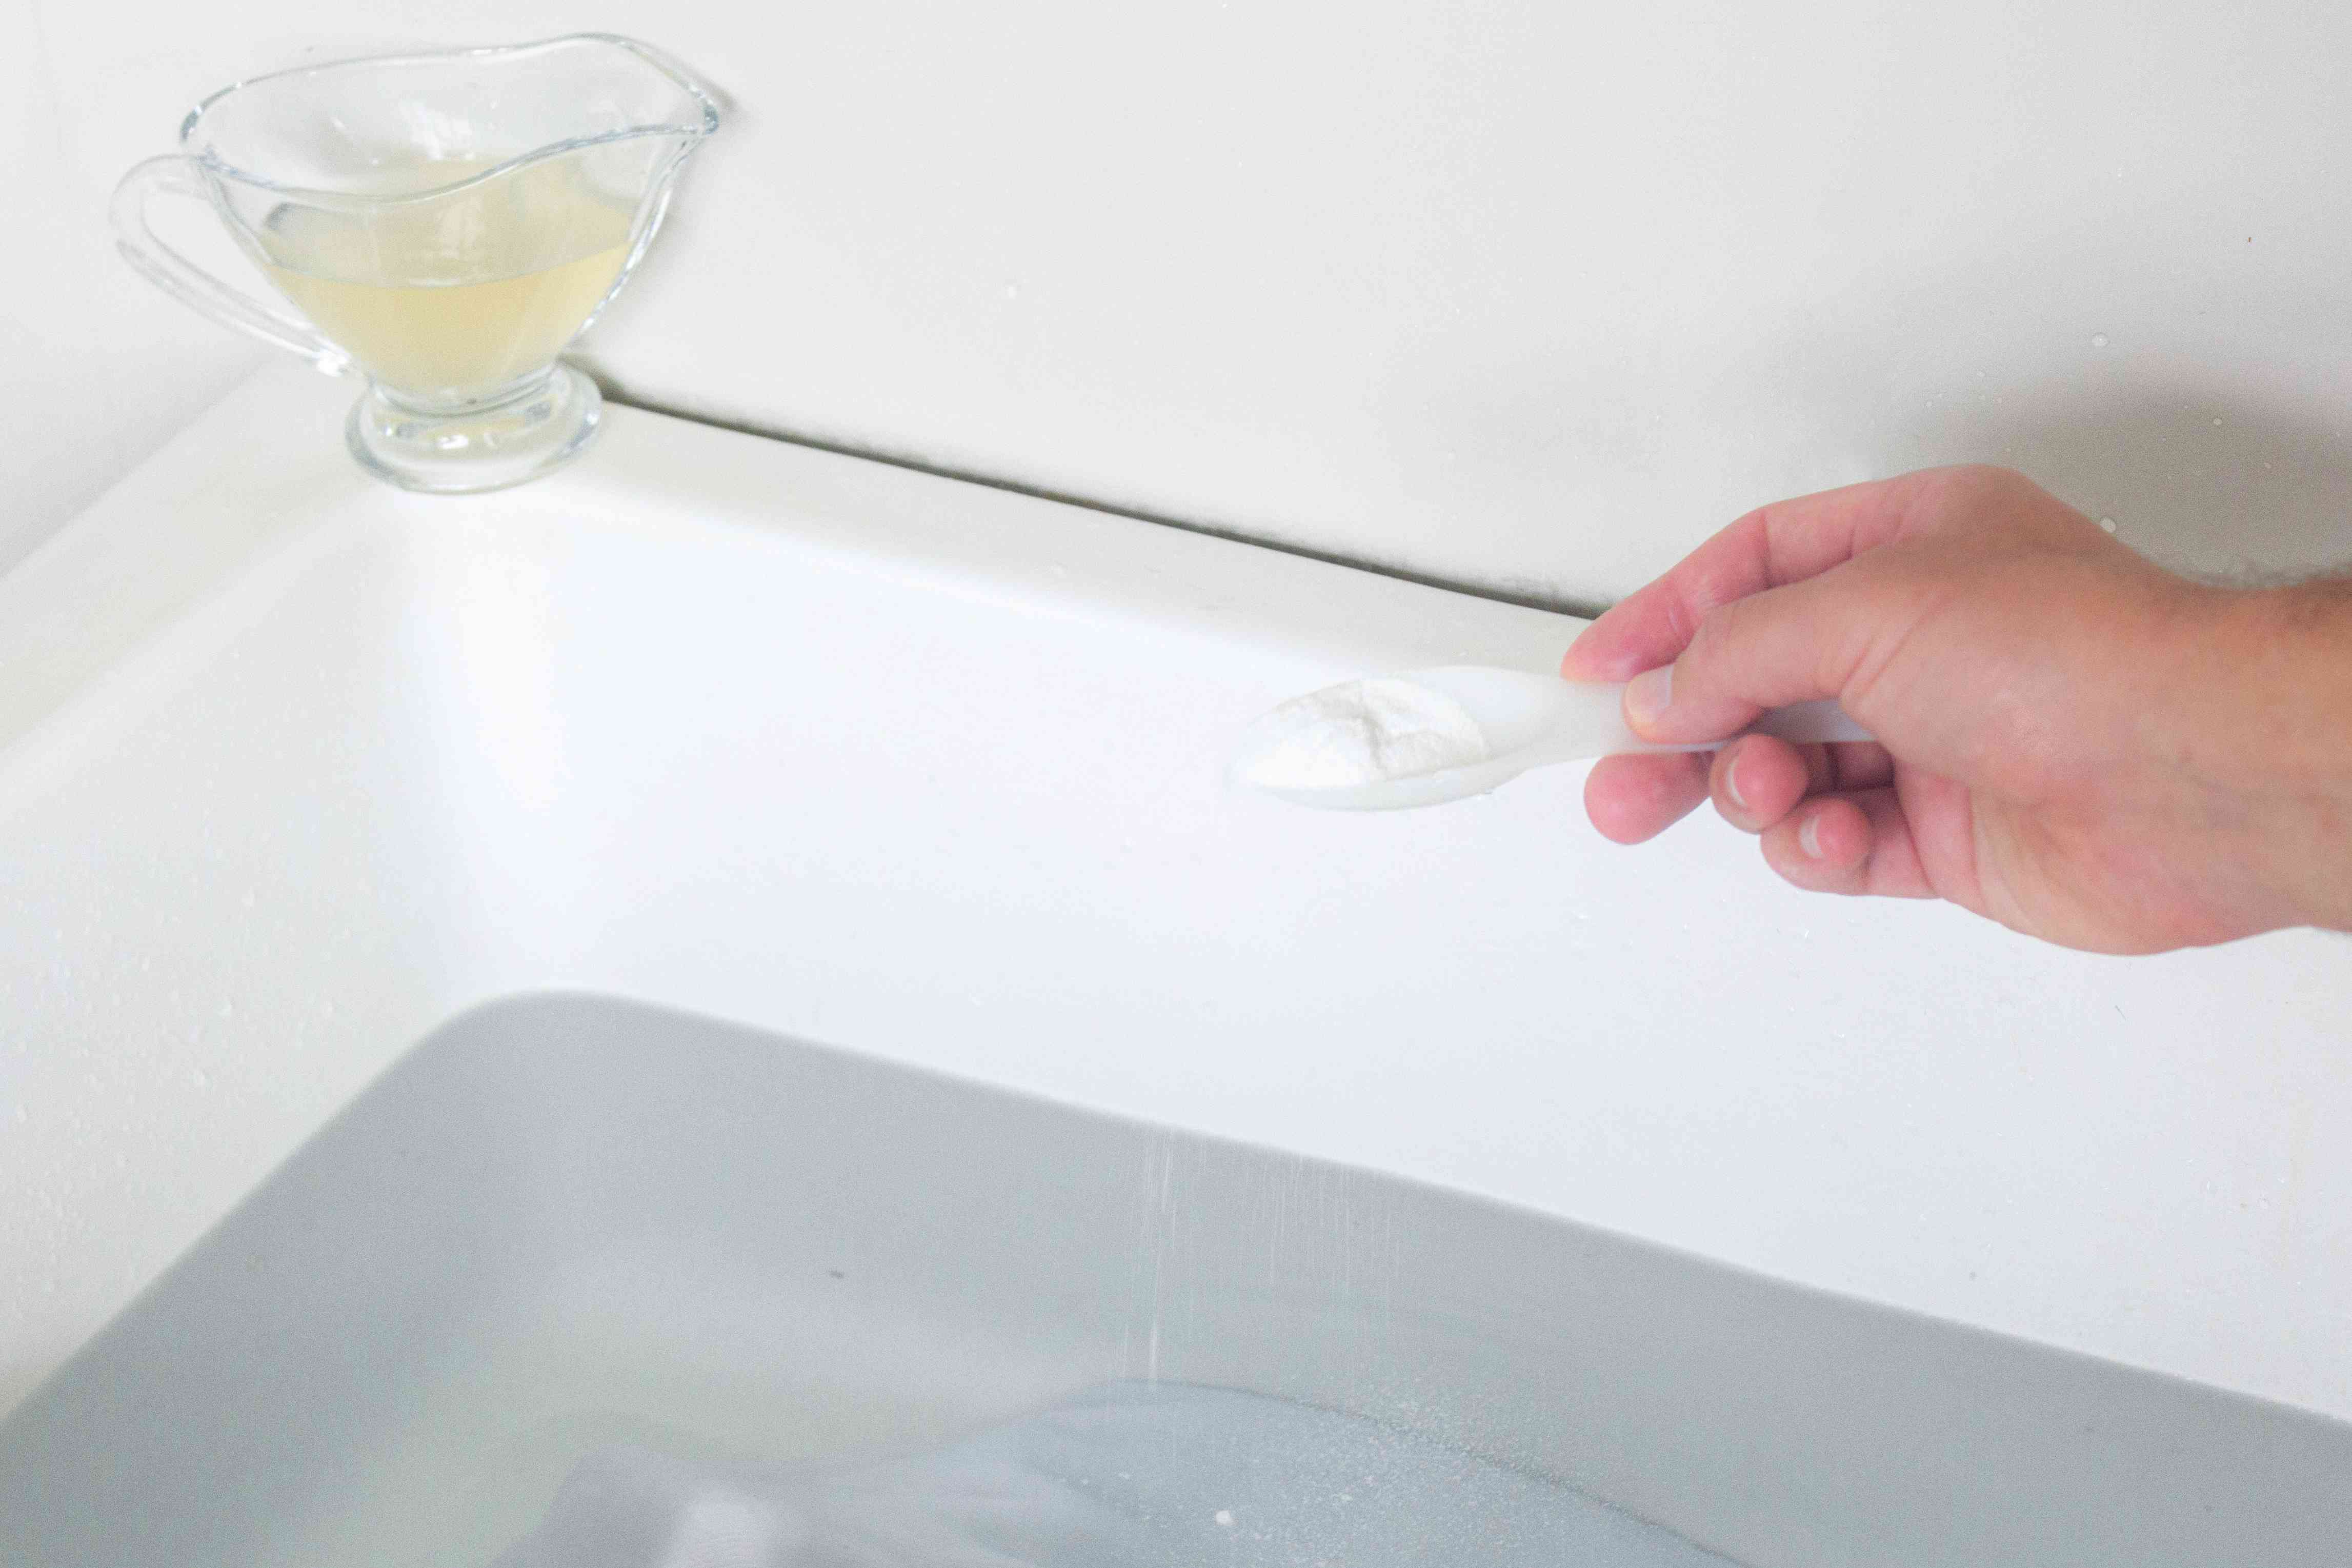 scooping oxygen bleach into a basin